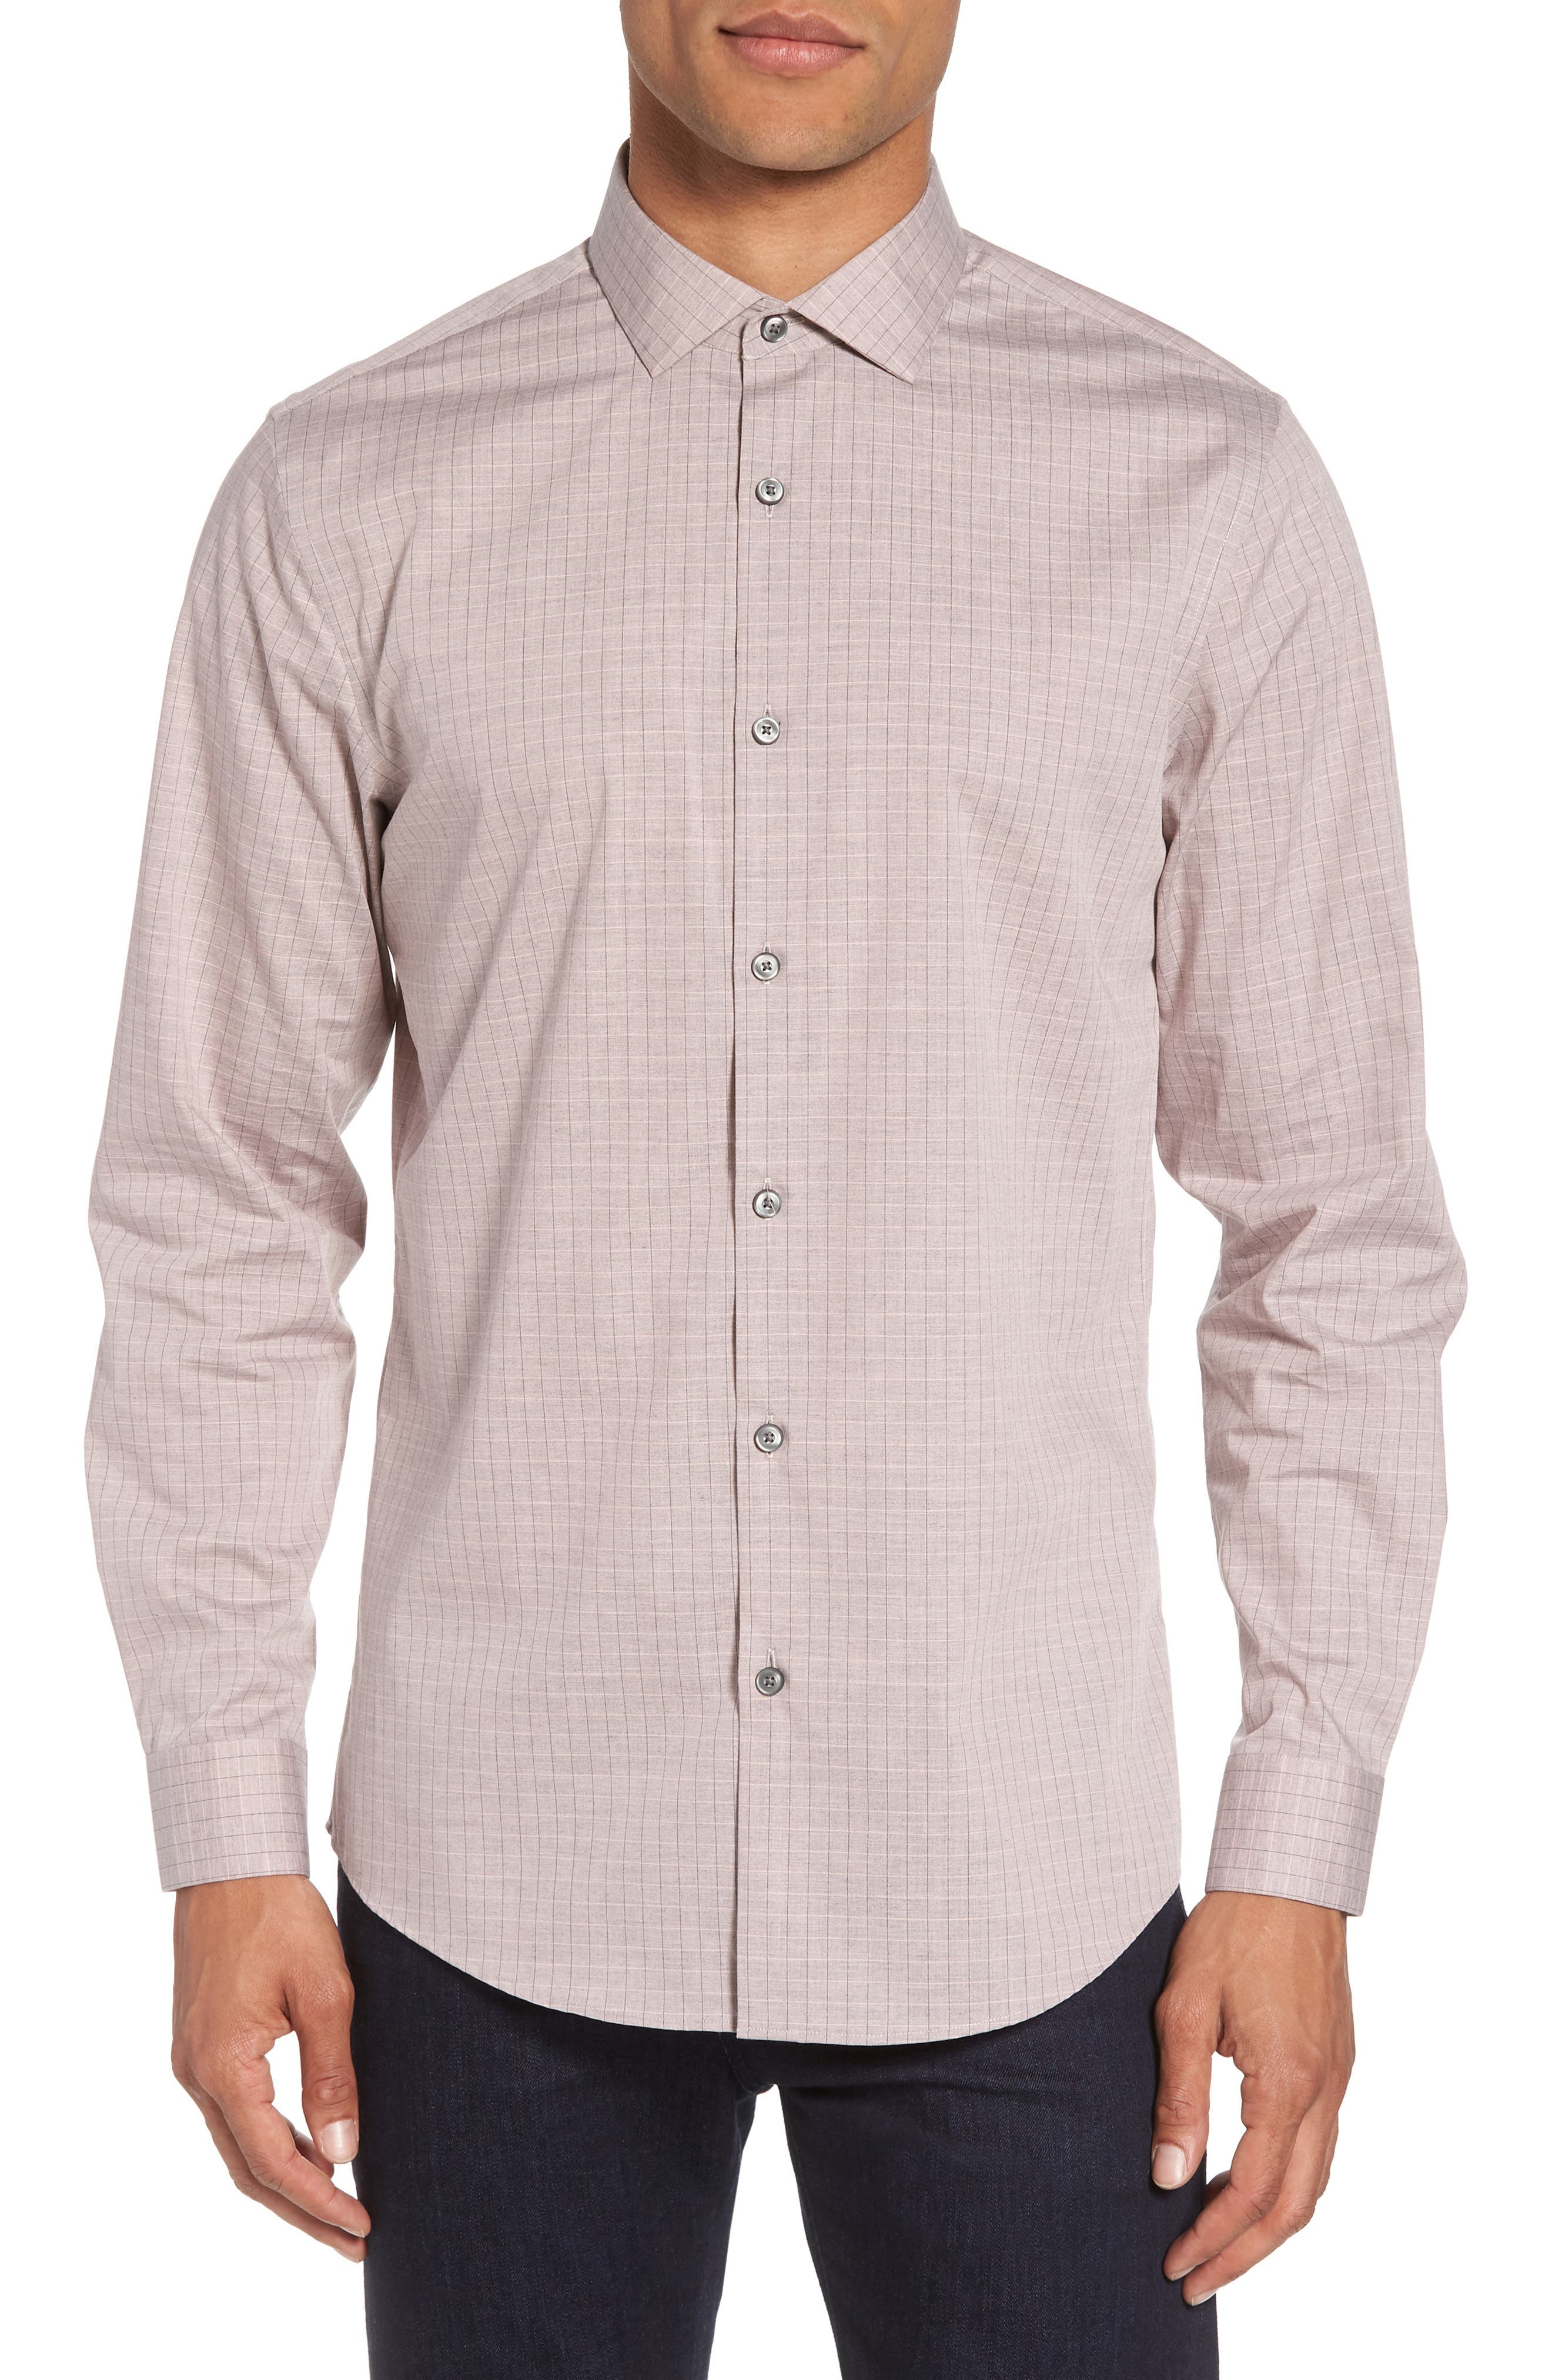 Grid Sport Shirt,                         Main,                         color, Pink Silver Heather Grid